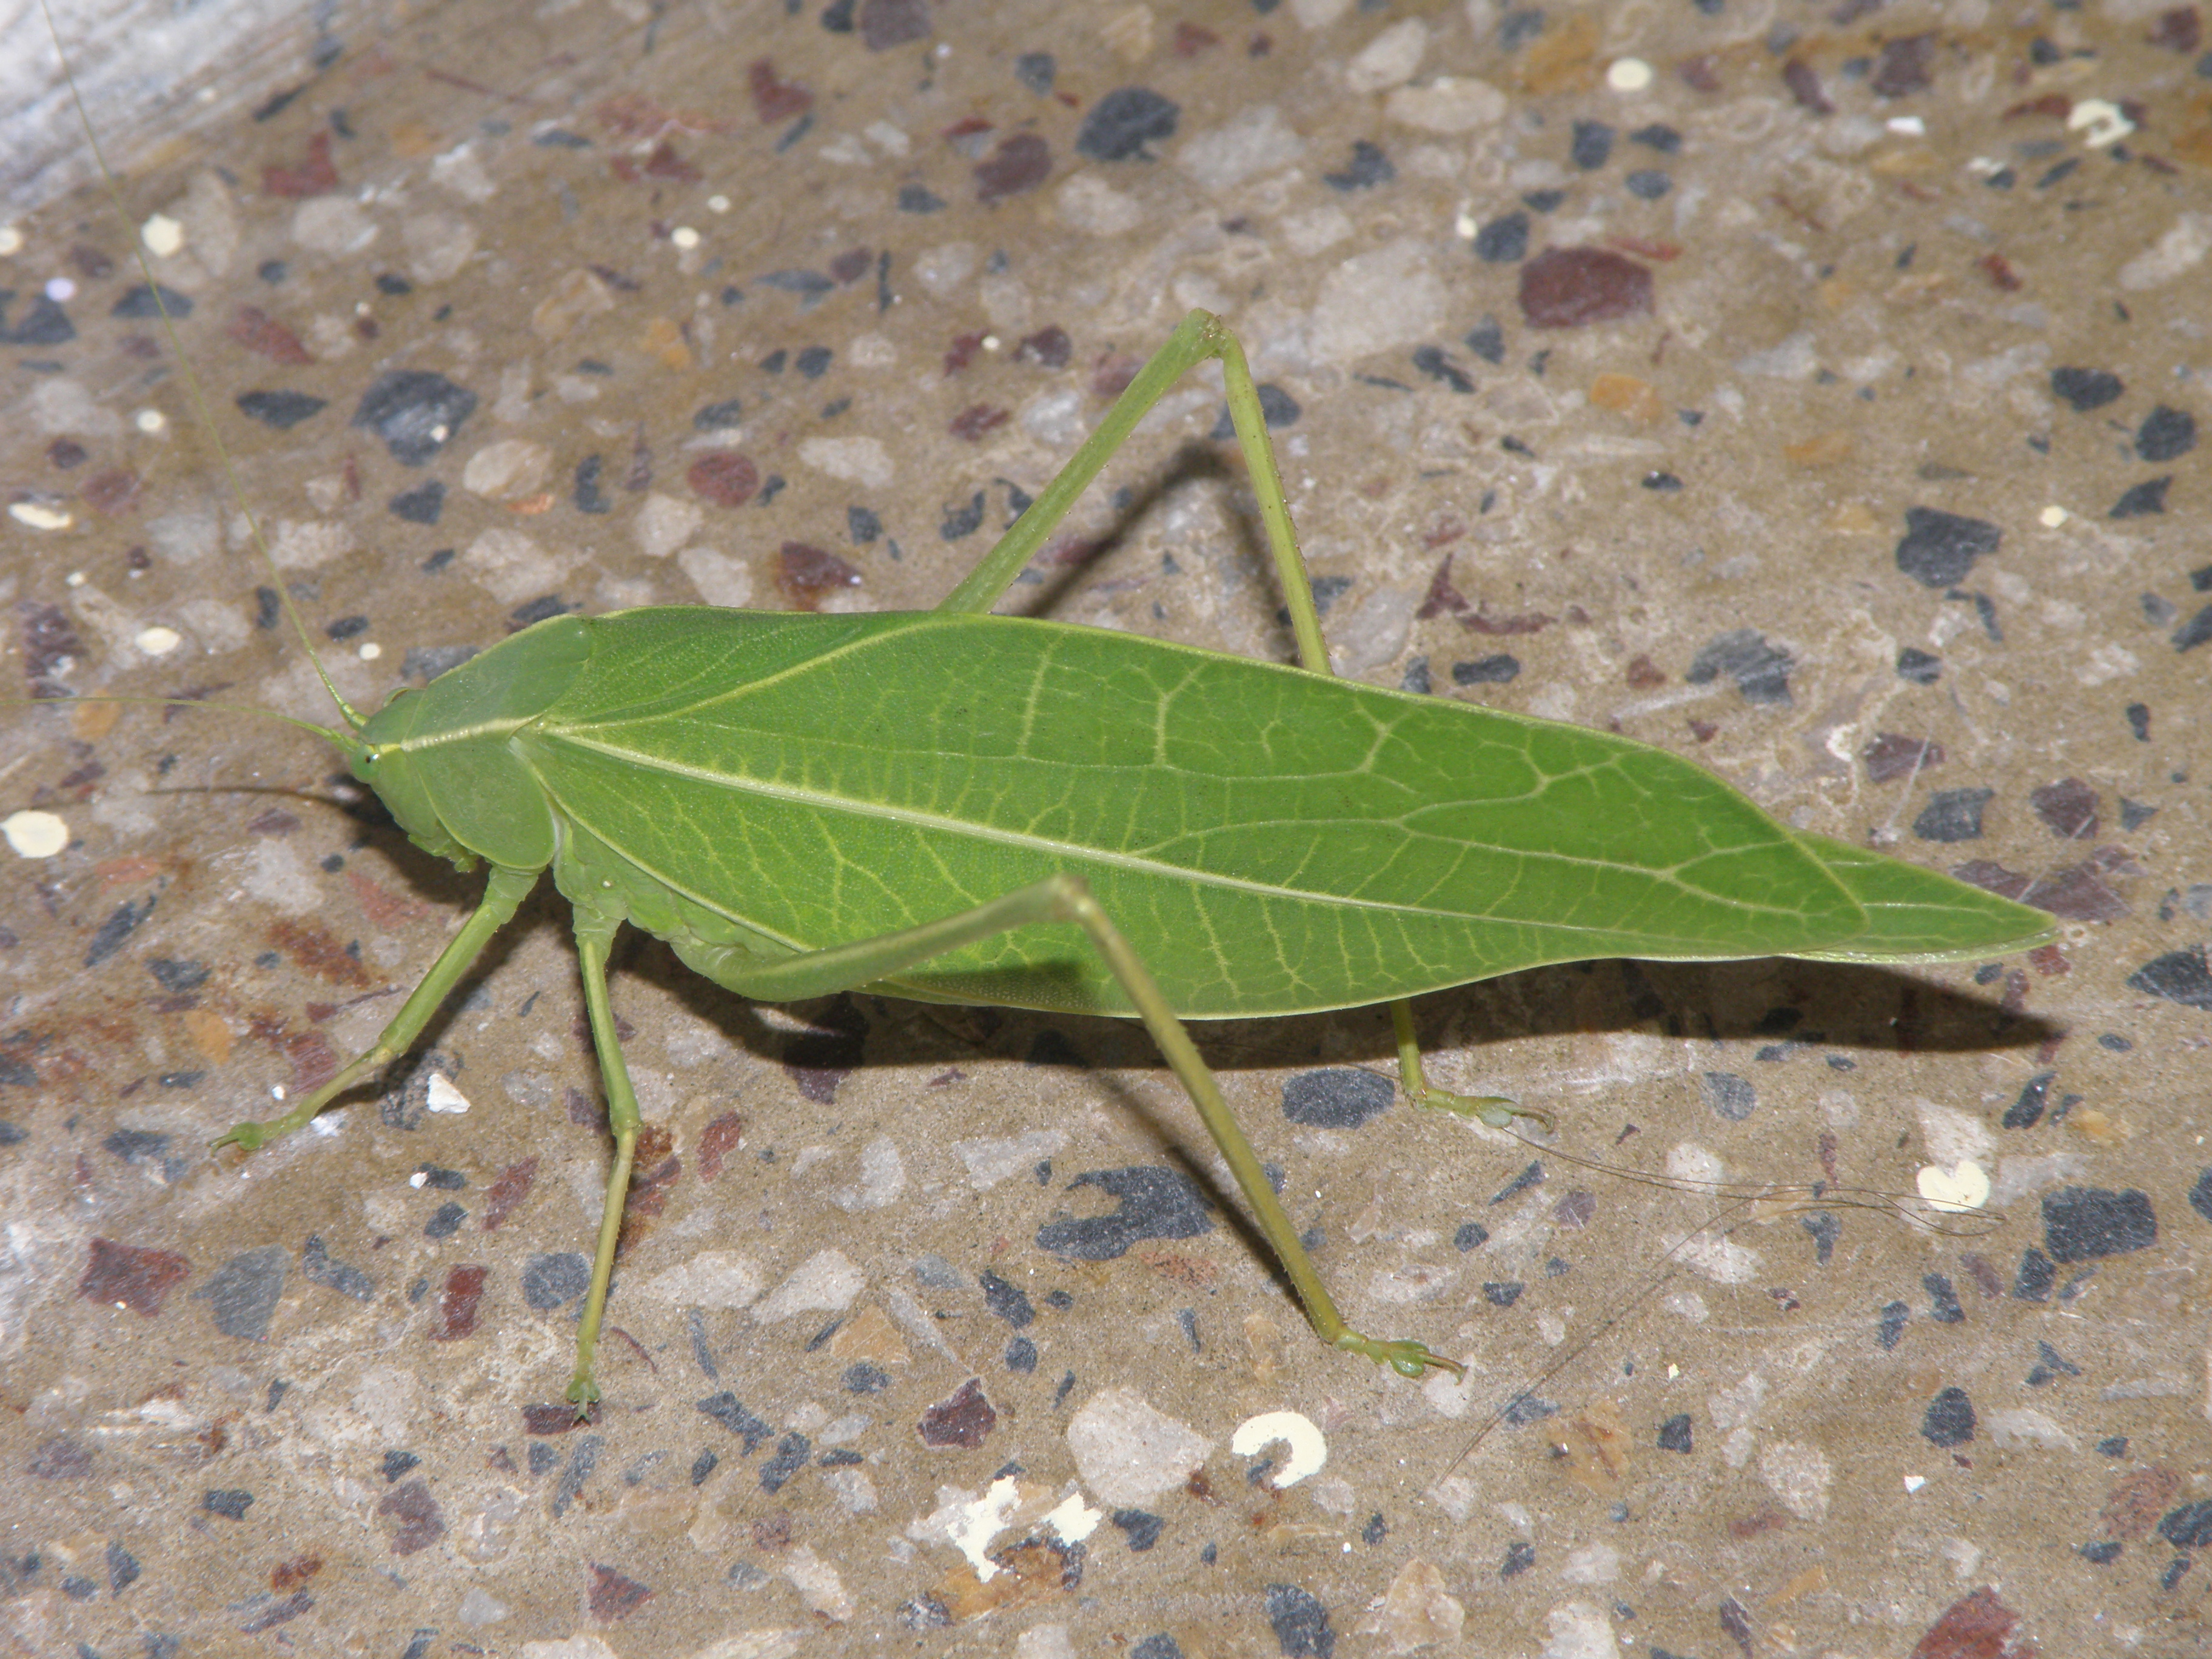 How Did Katydids Evolved From Grasshoppers Through Natural Selection